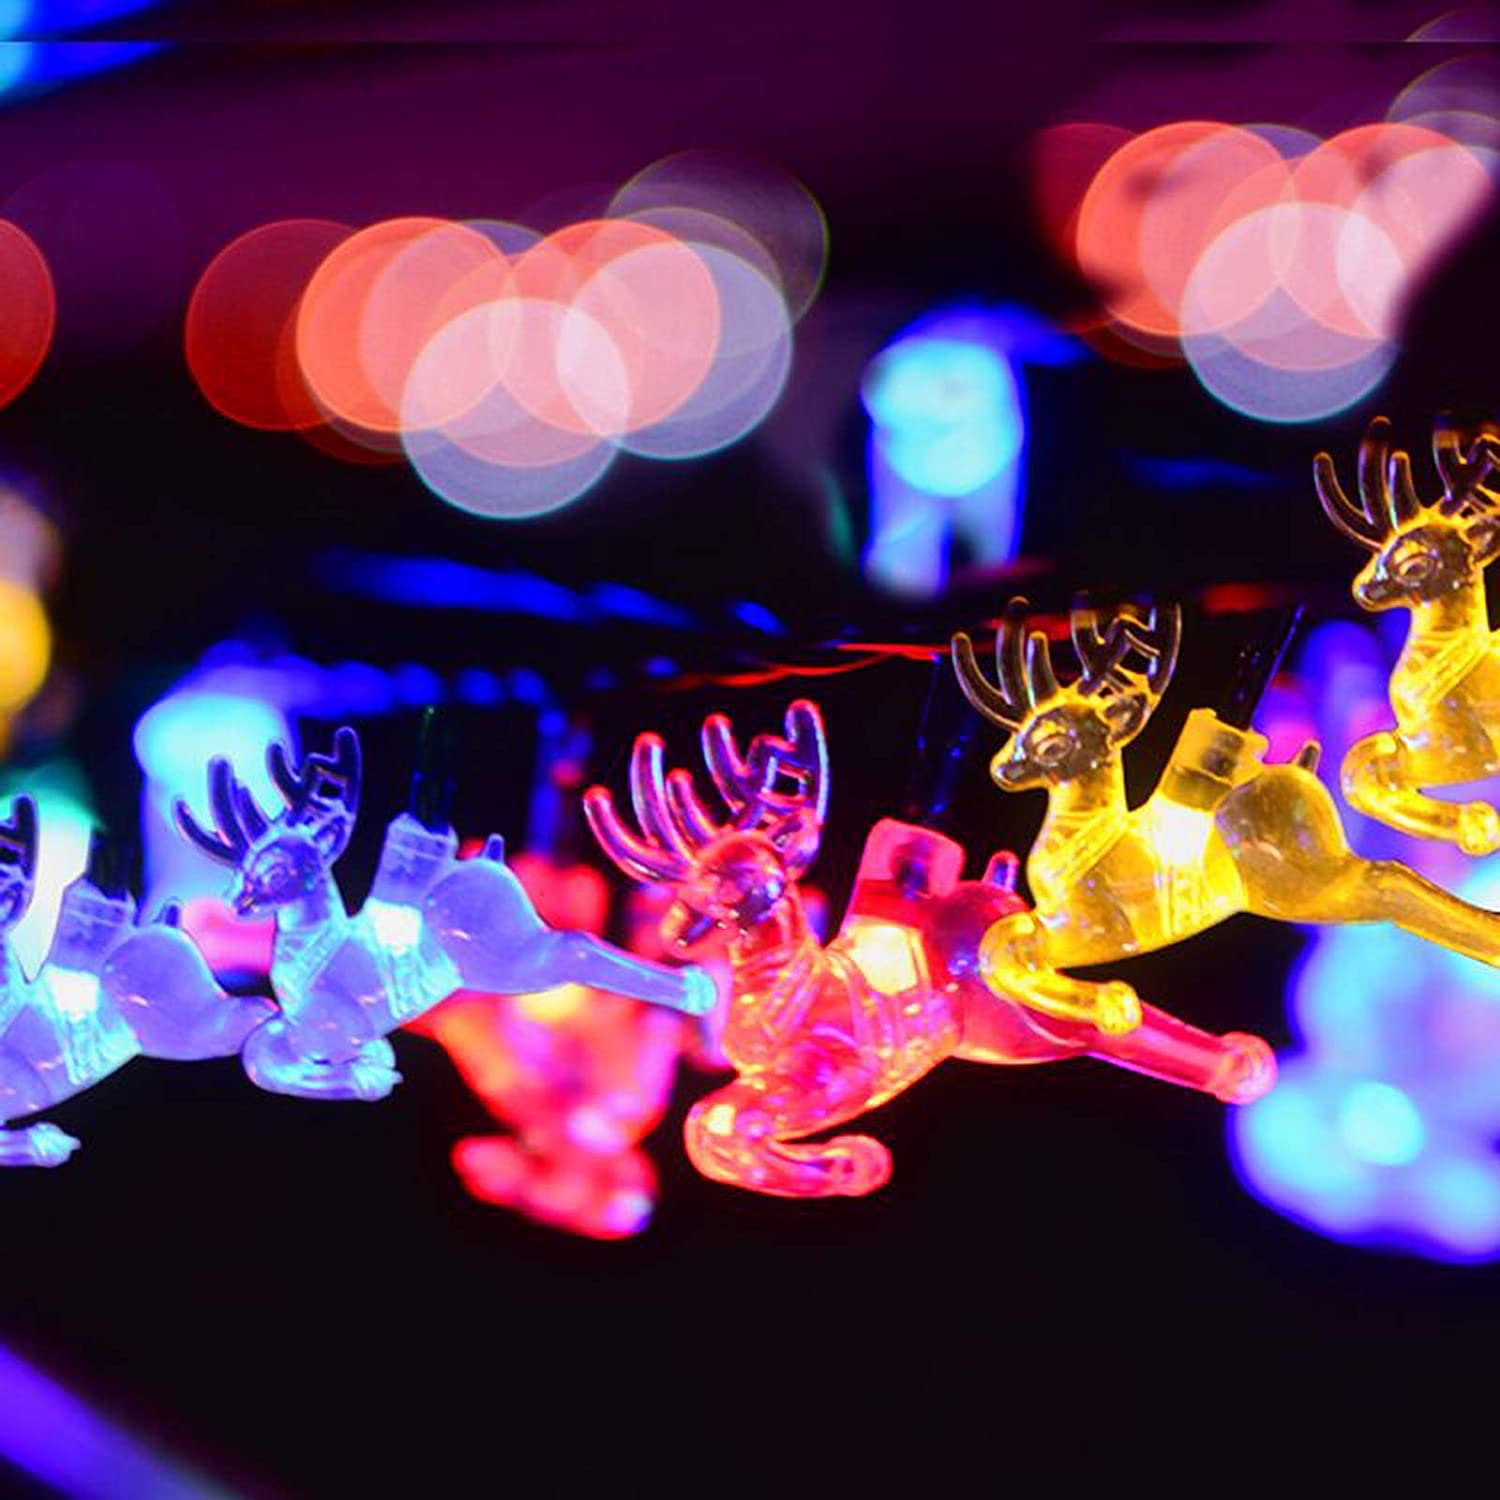 Christmas String Lights - Waterproof Battery Operated String Lights, 23Ft 50LED Christmas Decorative Lights Fairy Lights, 8 Modes Battery Powred String Lights for Xmas Tree & Party